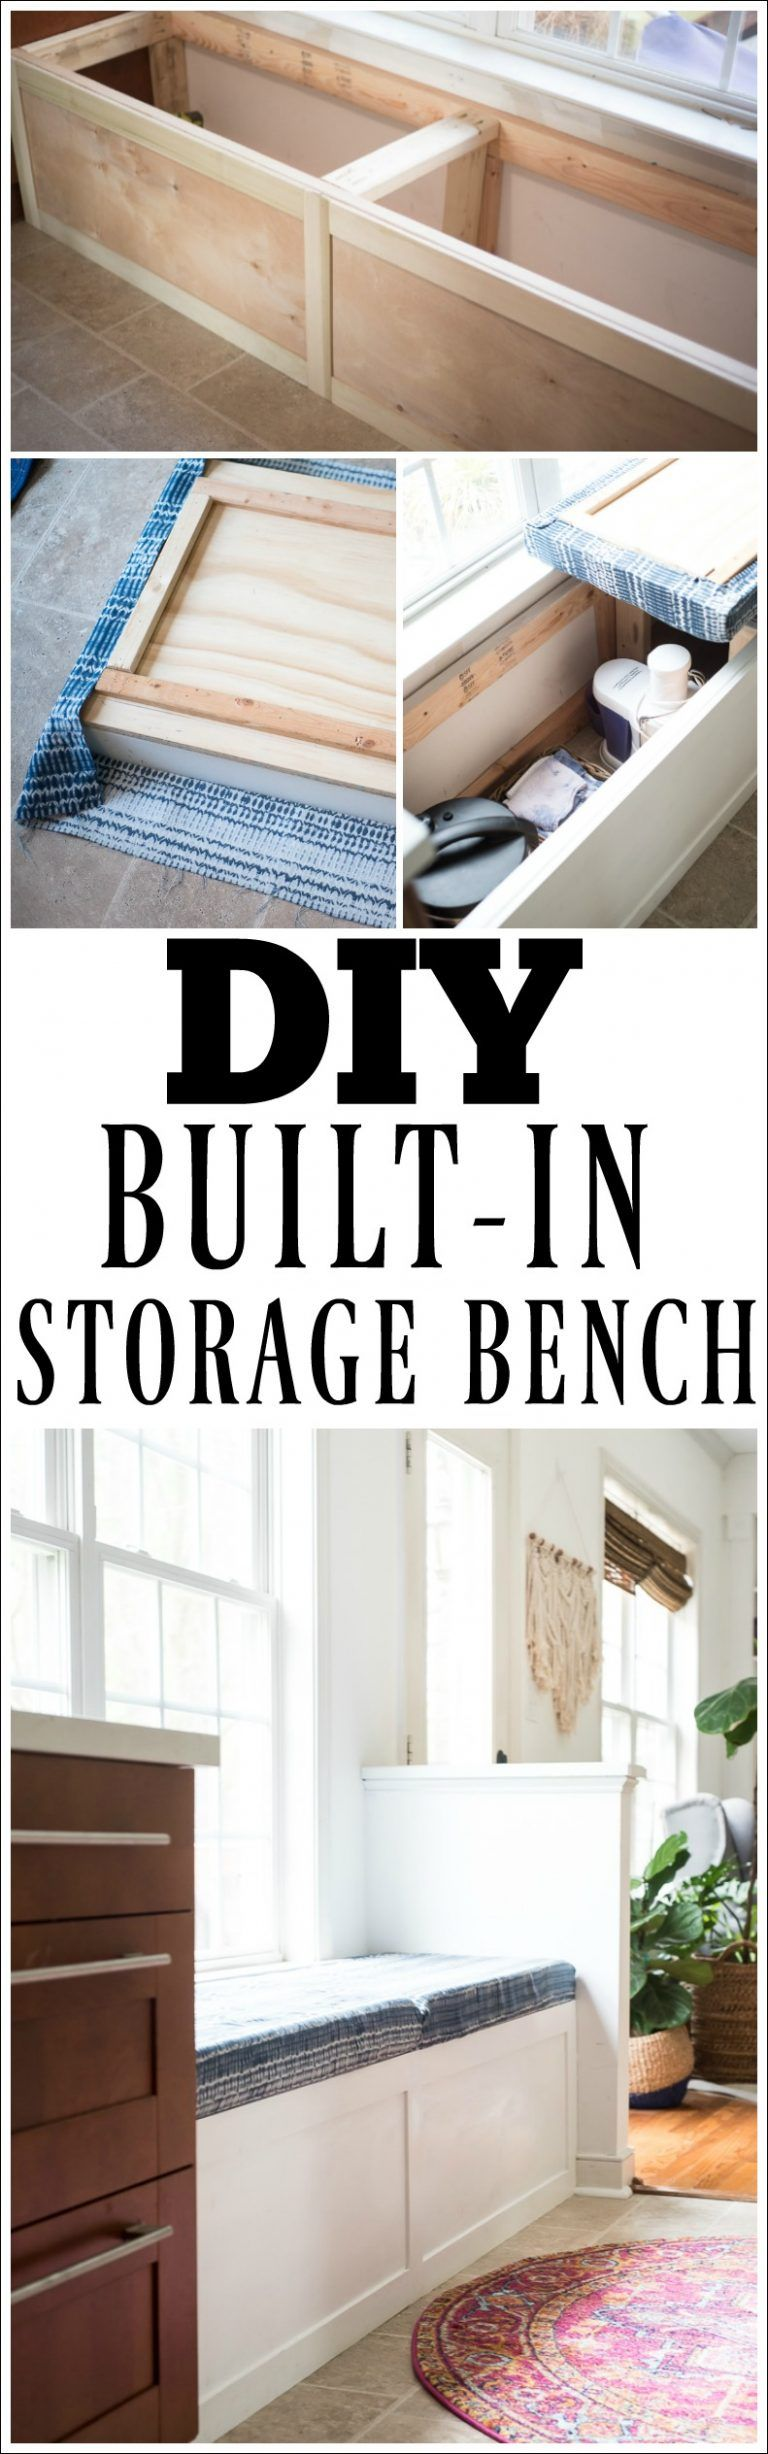 DIY BUILT-IN STORAGE BENCH TUTORIAL in 2020 | Diy storage ...